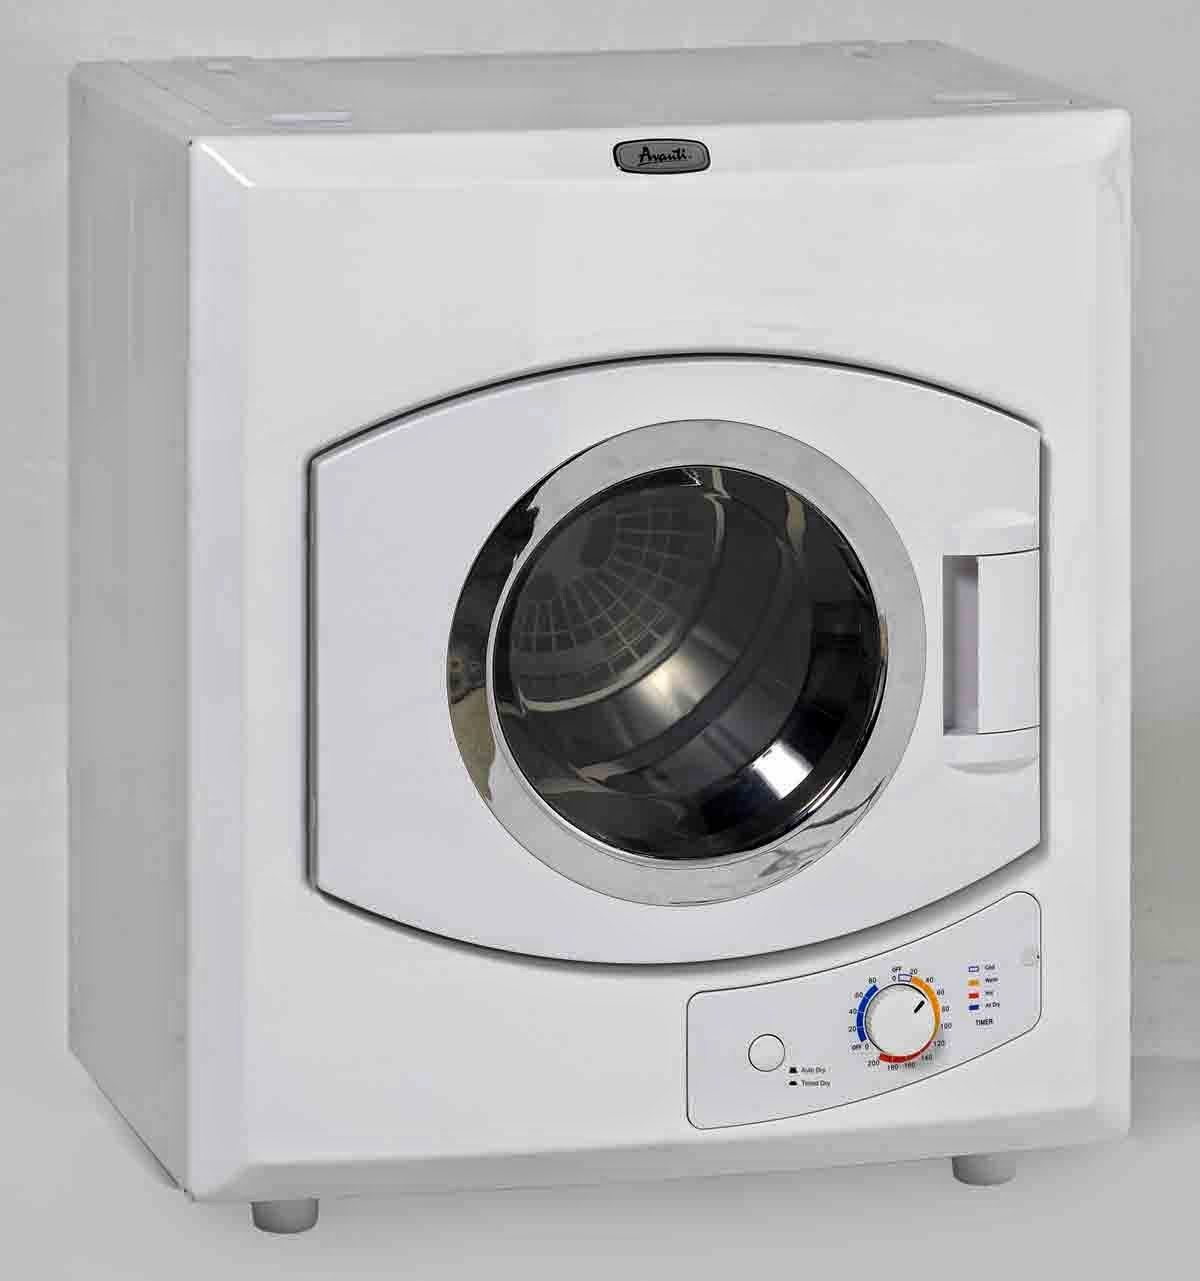 small washer and dryer: small front load washer and dryer